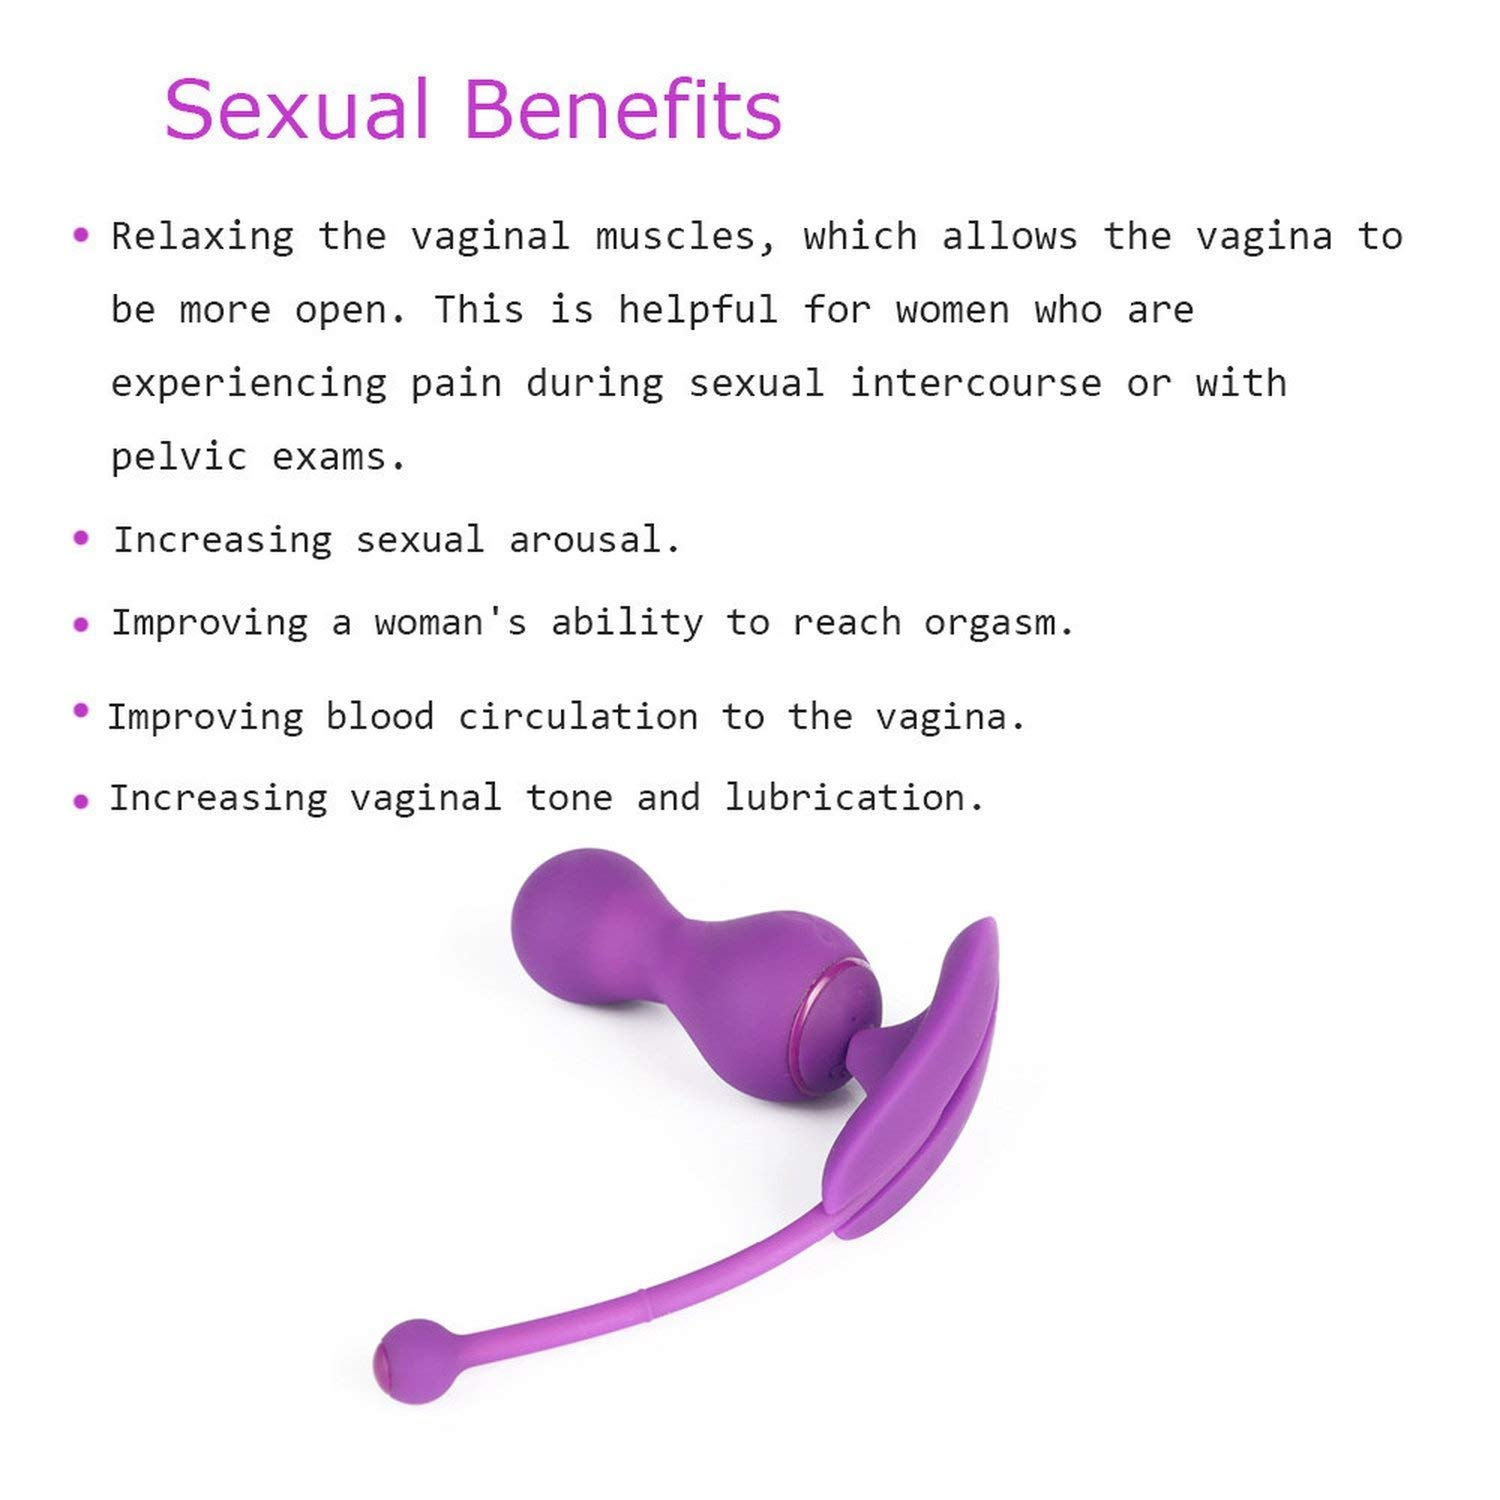 Special-You Tshirt G Spot Vibrators Women G-spot Vibrating S APP Control Smart Kegel Exercise Ball Vaginal Trainer Vibrator Eggs Sex Toys for Woman,Without Original Box,Sex Penis Vibrators Man EH by Special-You Tshirt (Image #2)